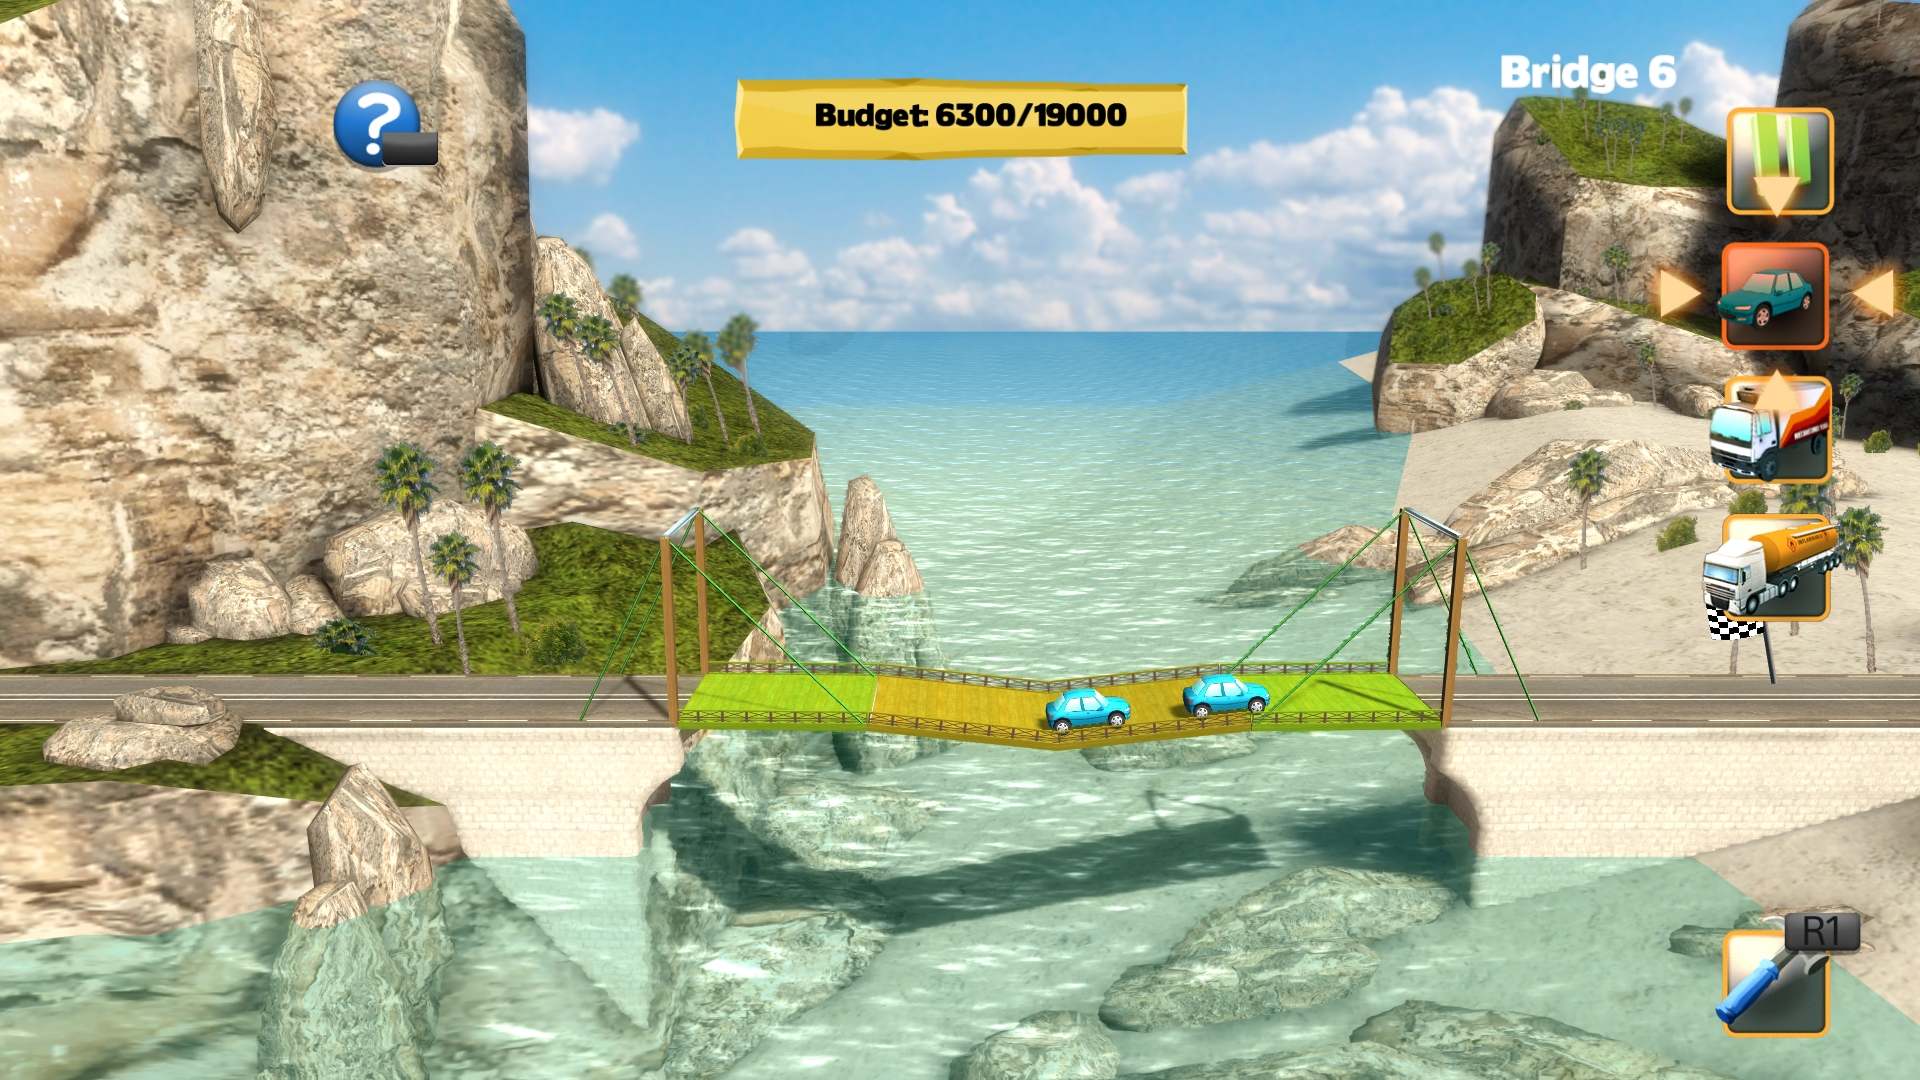 Bridge Constructor iOS and Mac games are on sale from just $1 today (50% off)